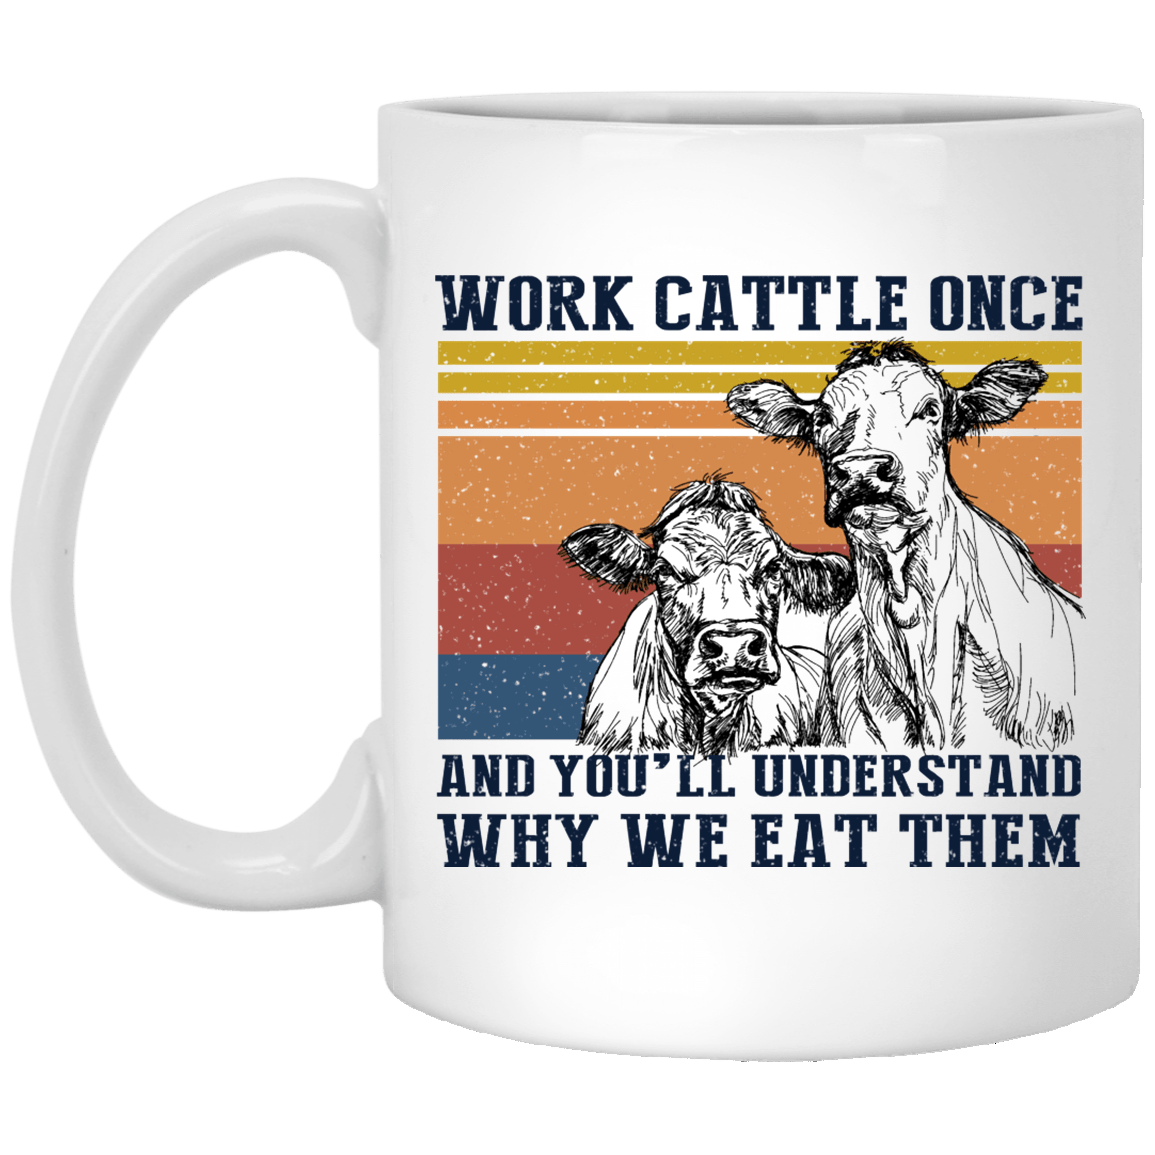 Work Cattle Once And You'll Understand Why We Eat Them Cows Mug 1005-9786-86101819-47417 - Tee Ript